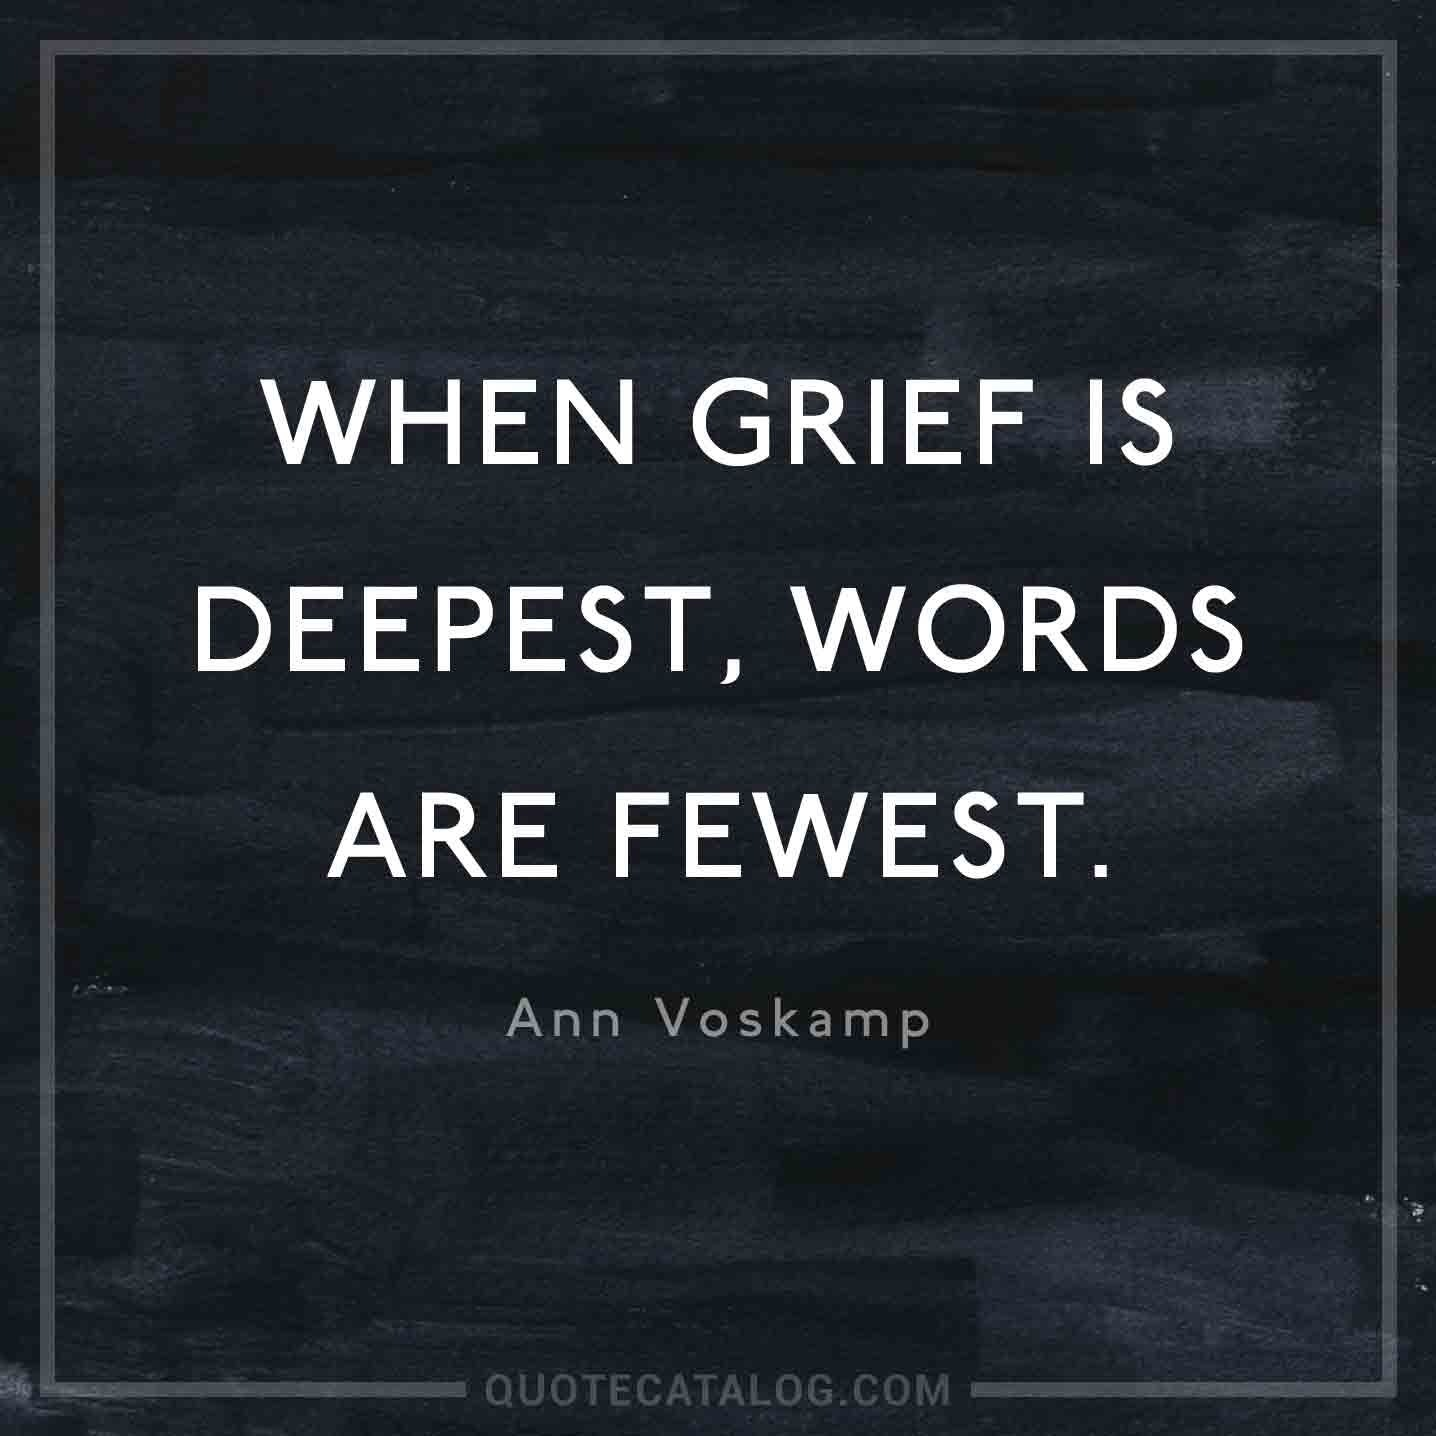 Image of: Urdu Poetry When Grief Is Deepest Words Are Fewest Quote Catalog 150 Sad Quotes That Will Speak To Your Isolated Heart